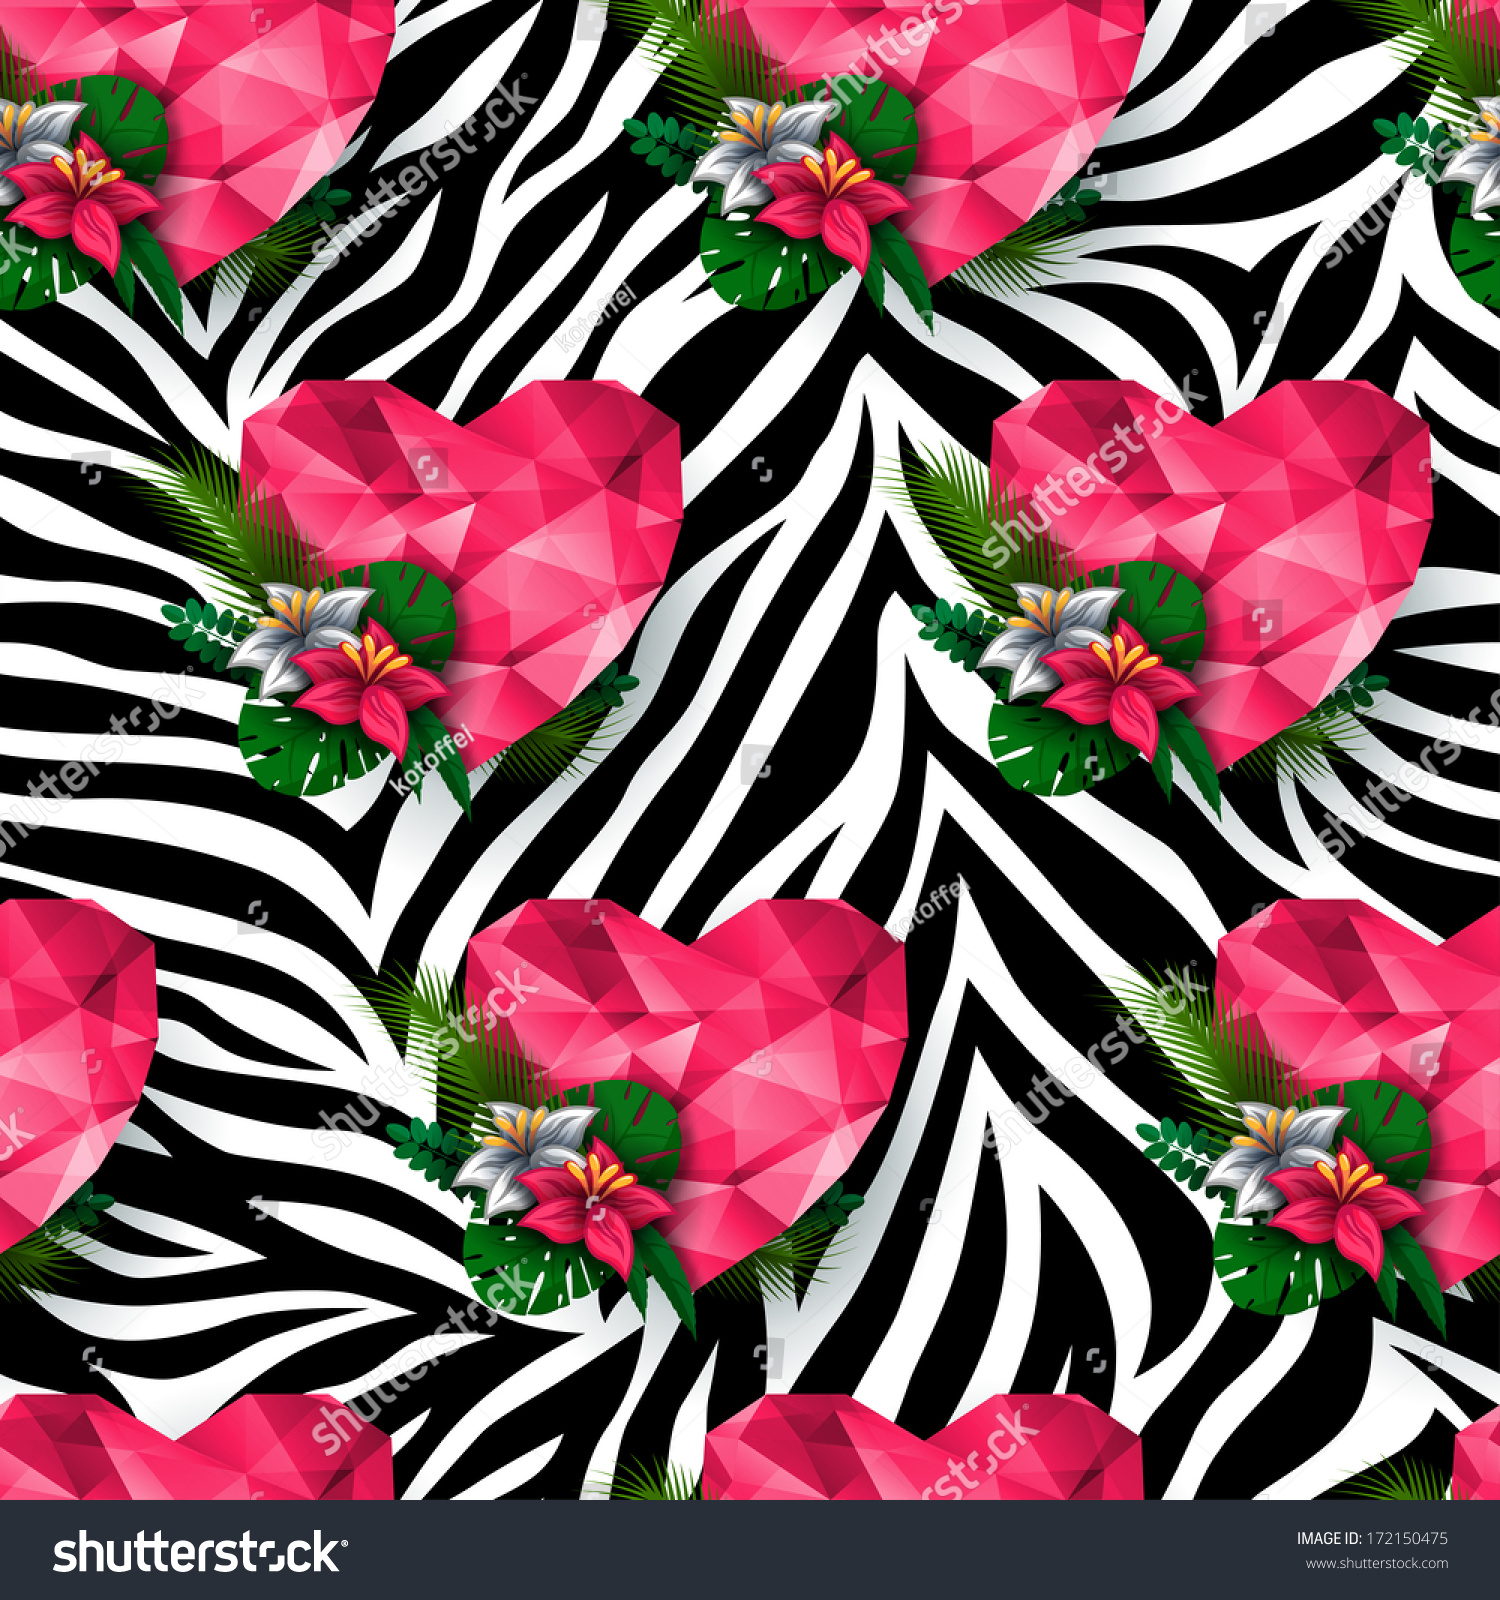 Chic Vector Seamless Patterns Tiling Animal Stock Vector ...